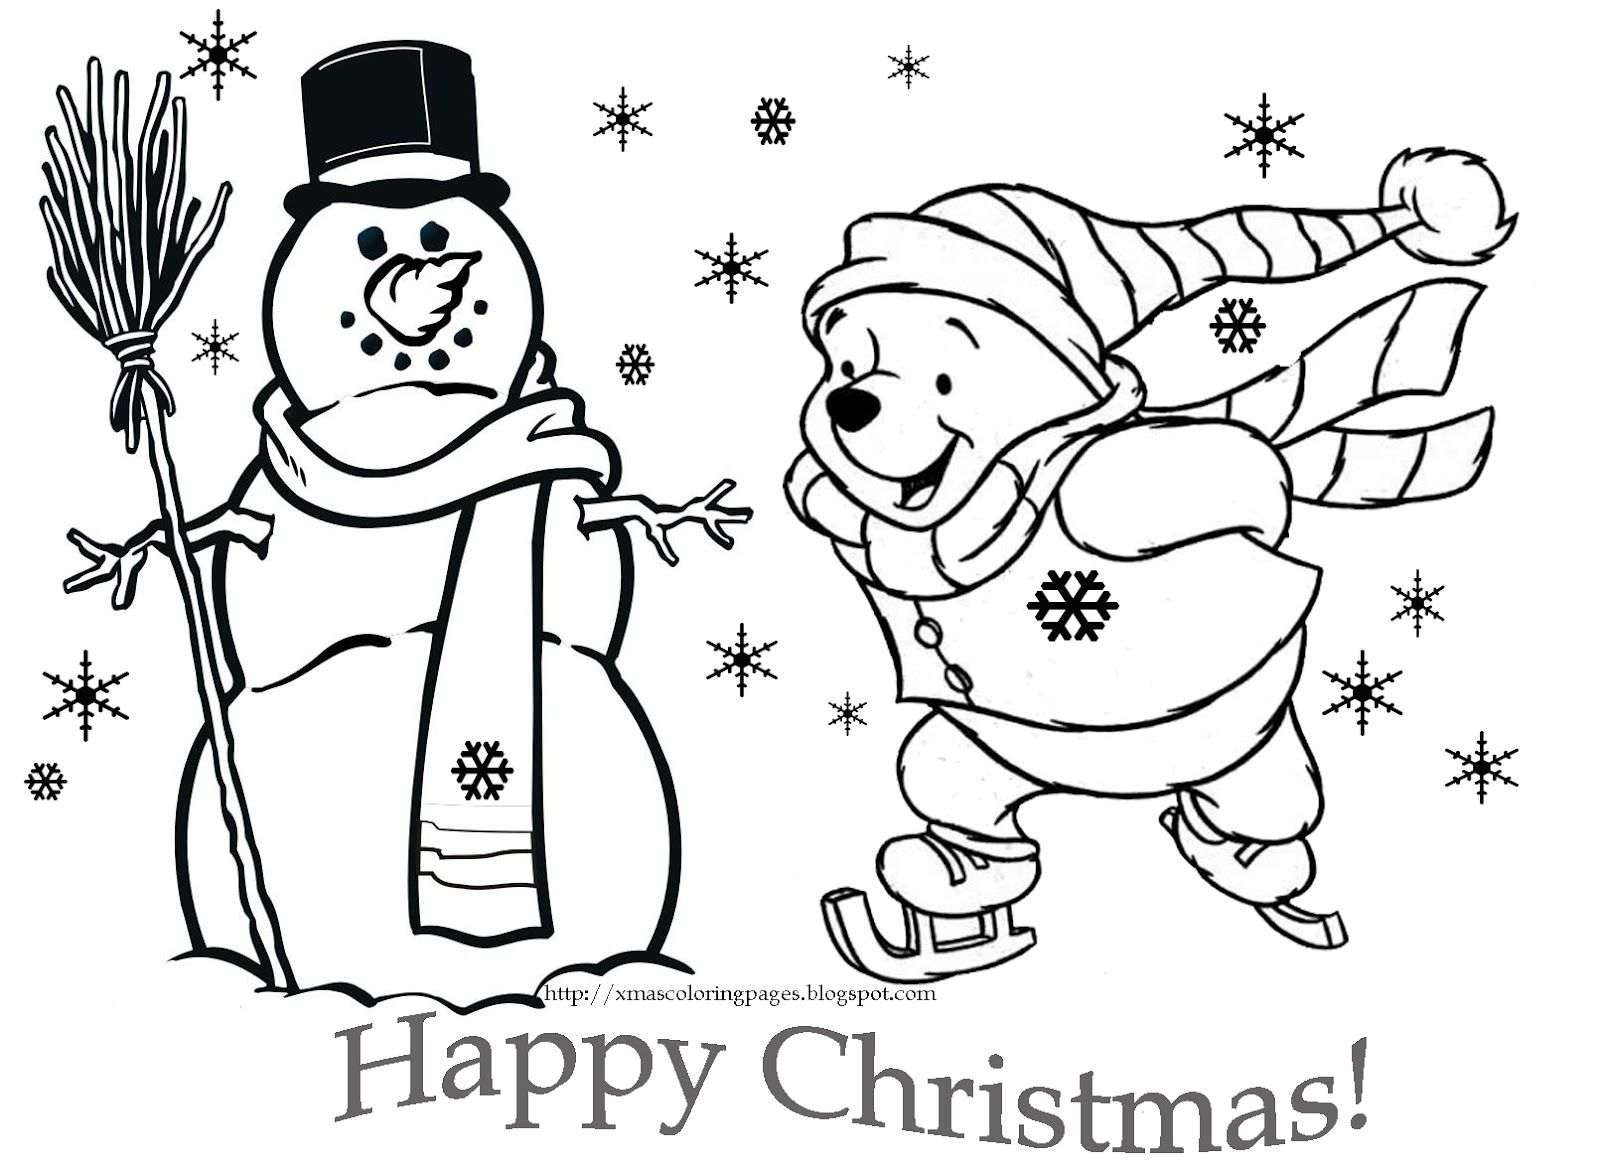 Disney Coloring Pages Printable Christmas Coloring Pages Free Christmas Coloring Pages Kids Christmas Coloring Pages